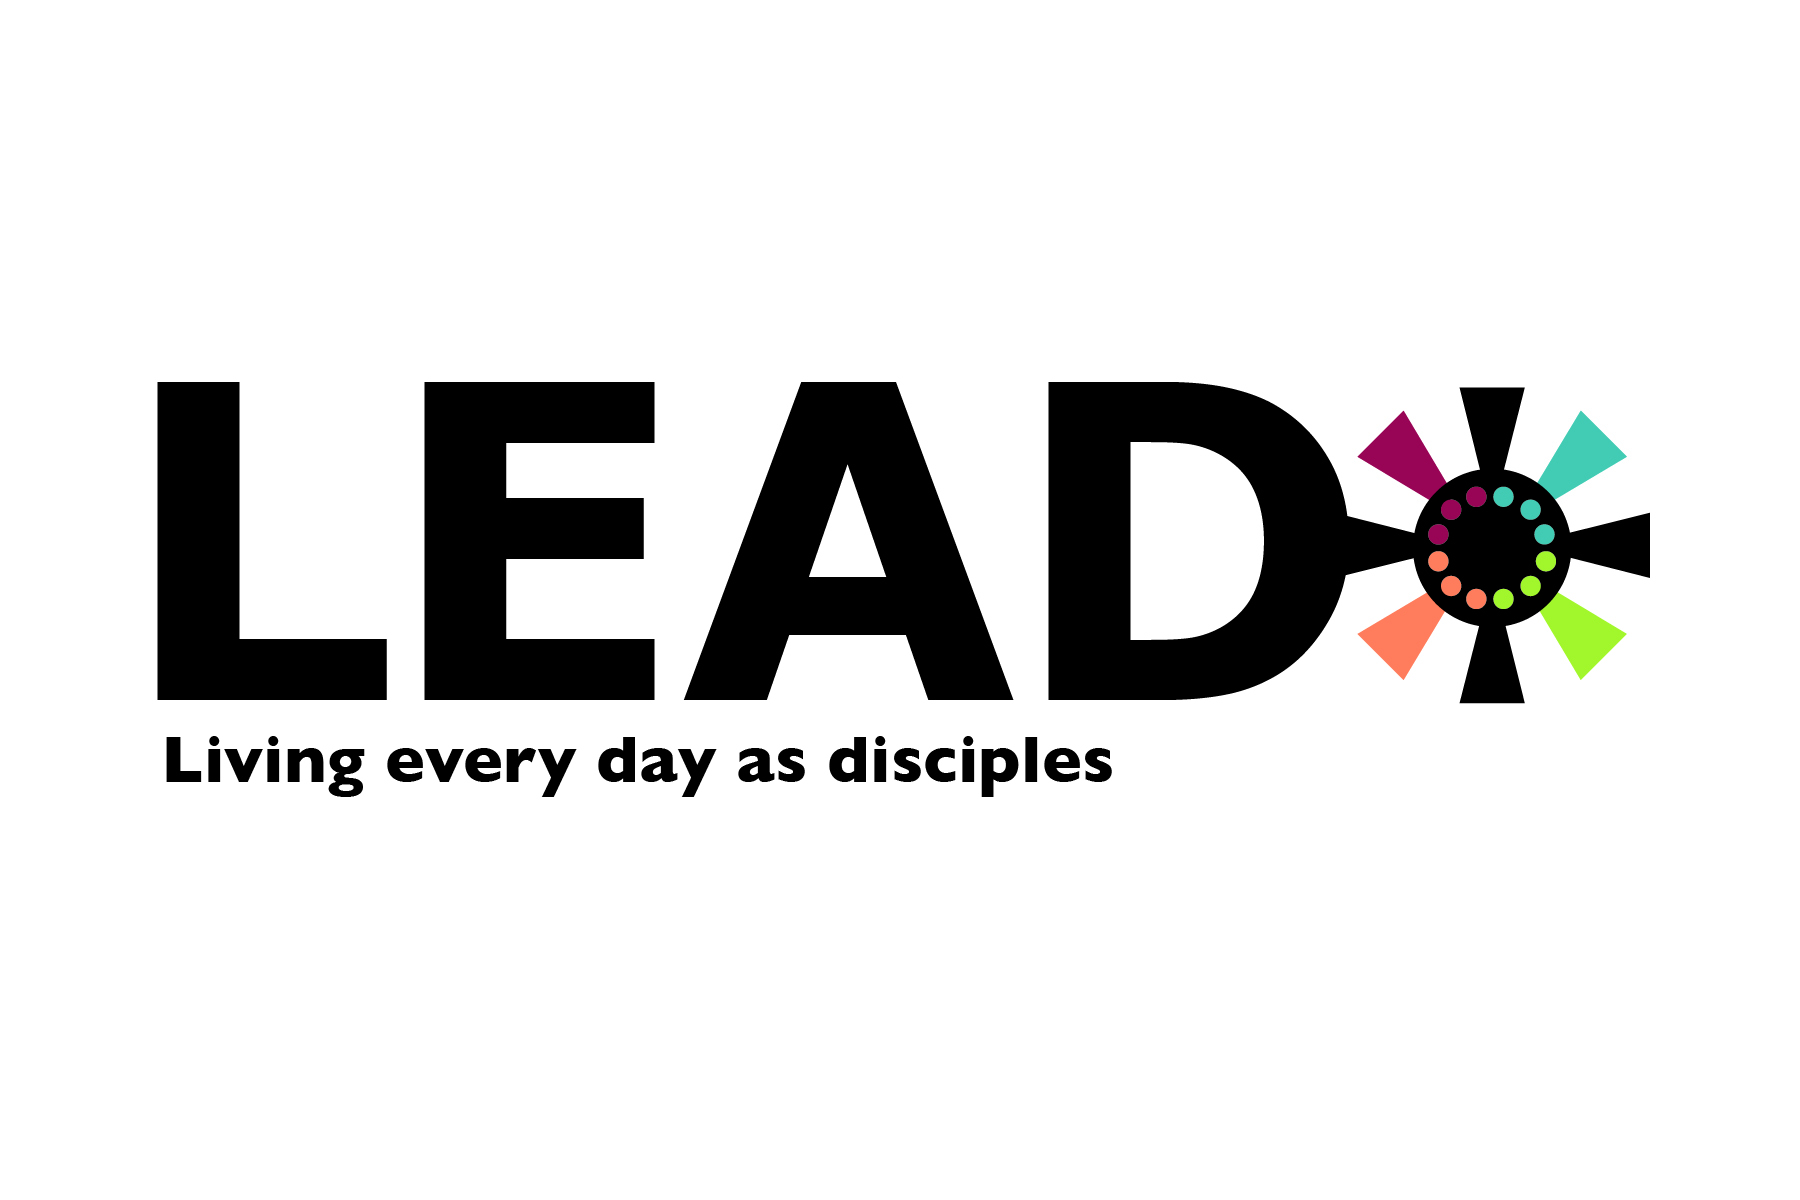 Why I feel called to LEAD…Just in case you are wondering